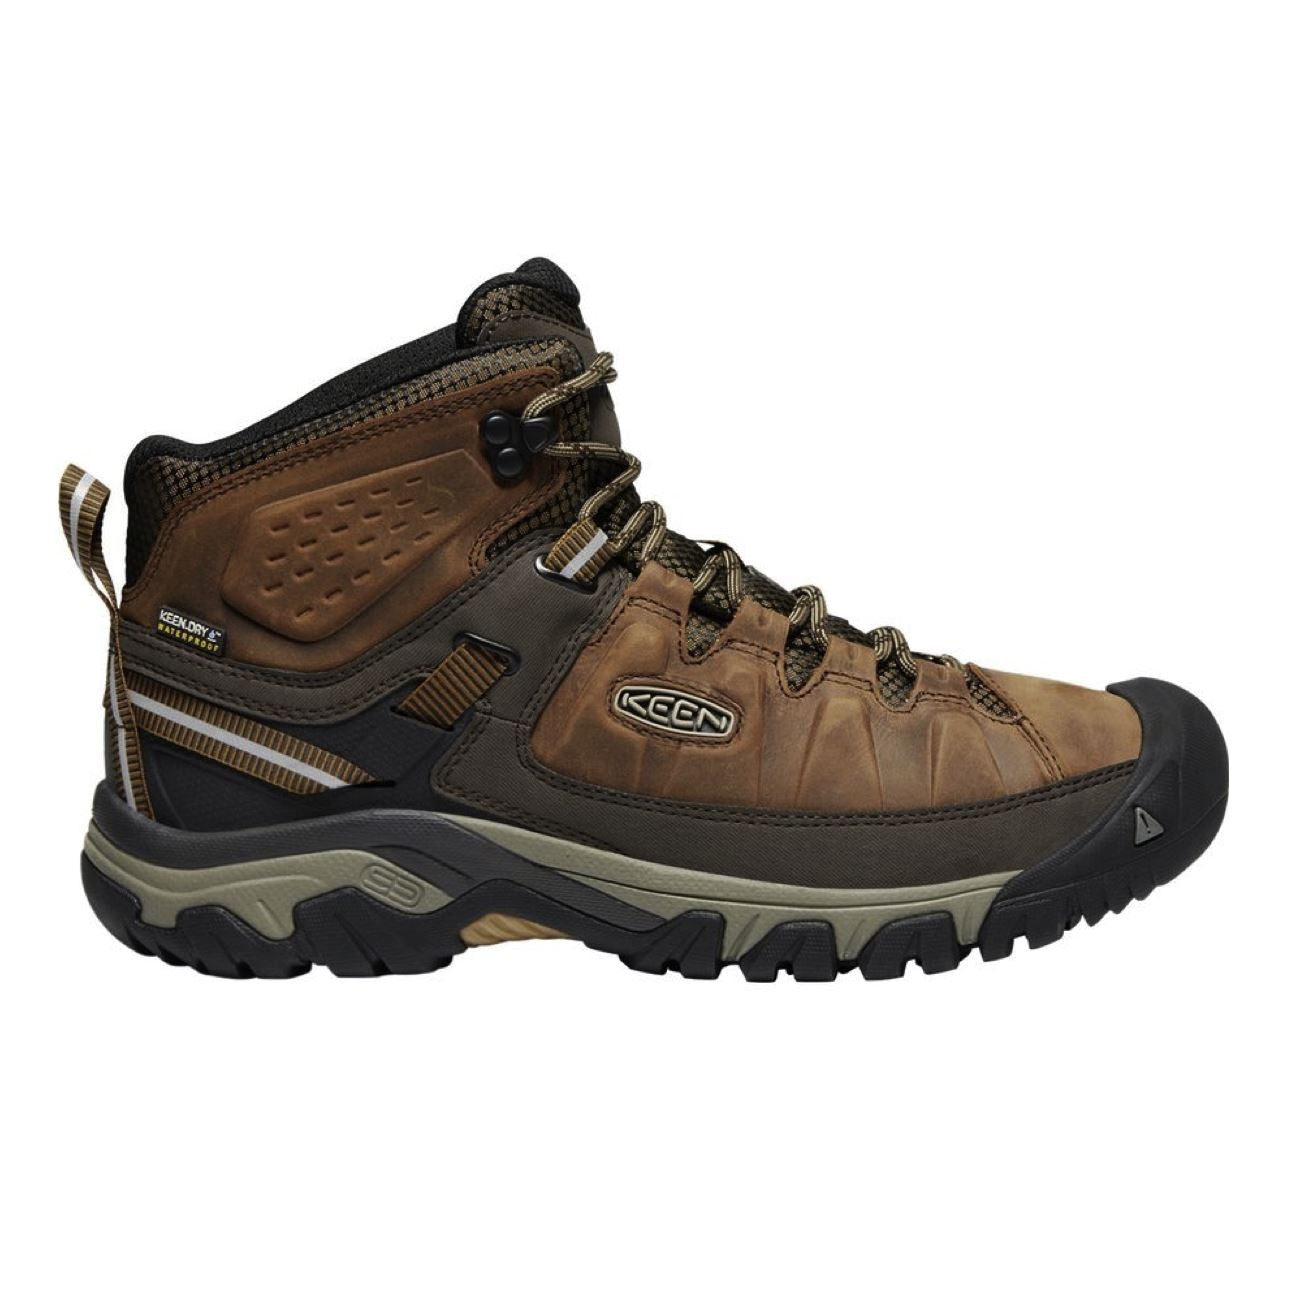 Keen, Targhee III Mid, Boot, Big Ben Golden Brown Hiking Boots Keen Big Ben Golden Brown 10